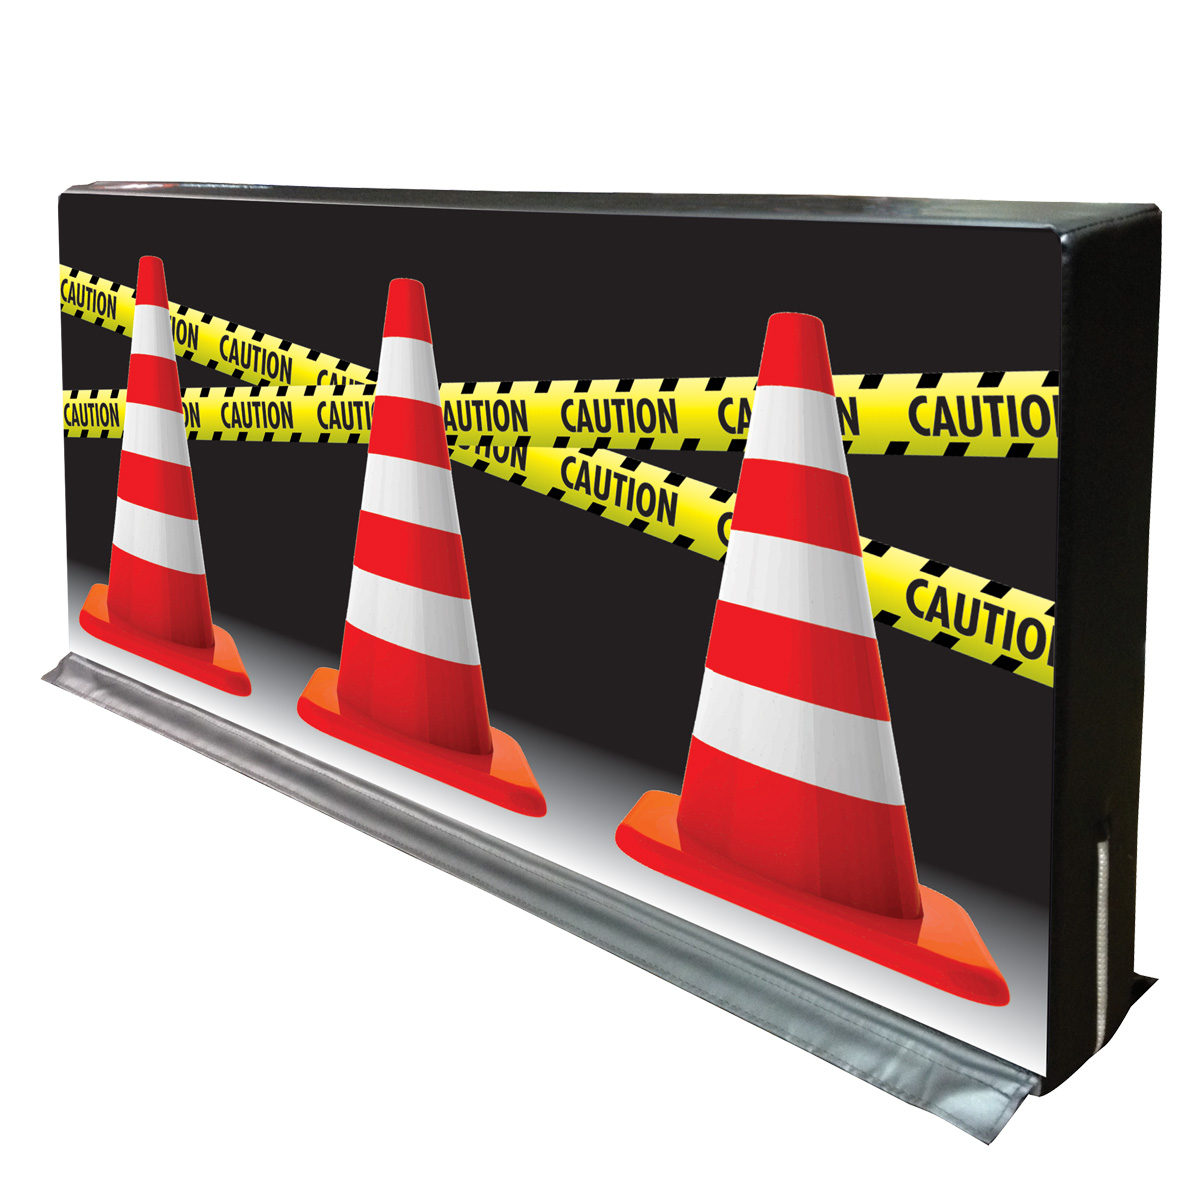 mancino mats traffic cones and caution tape hedge divider wall by mancino